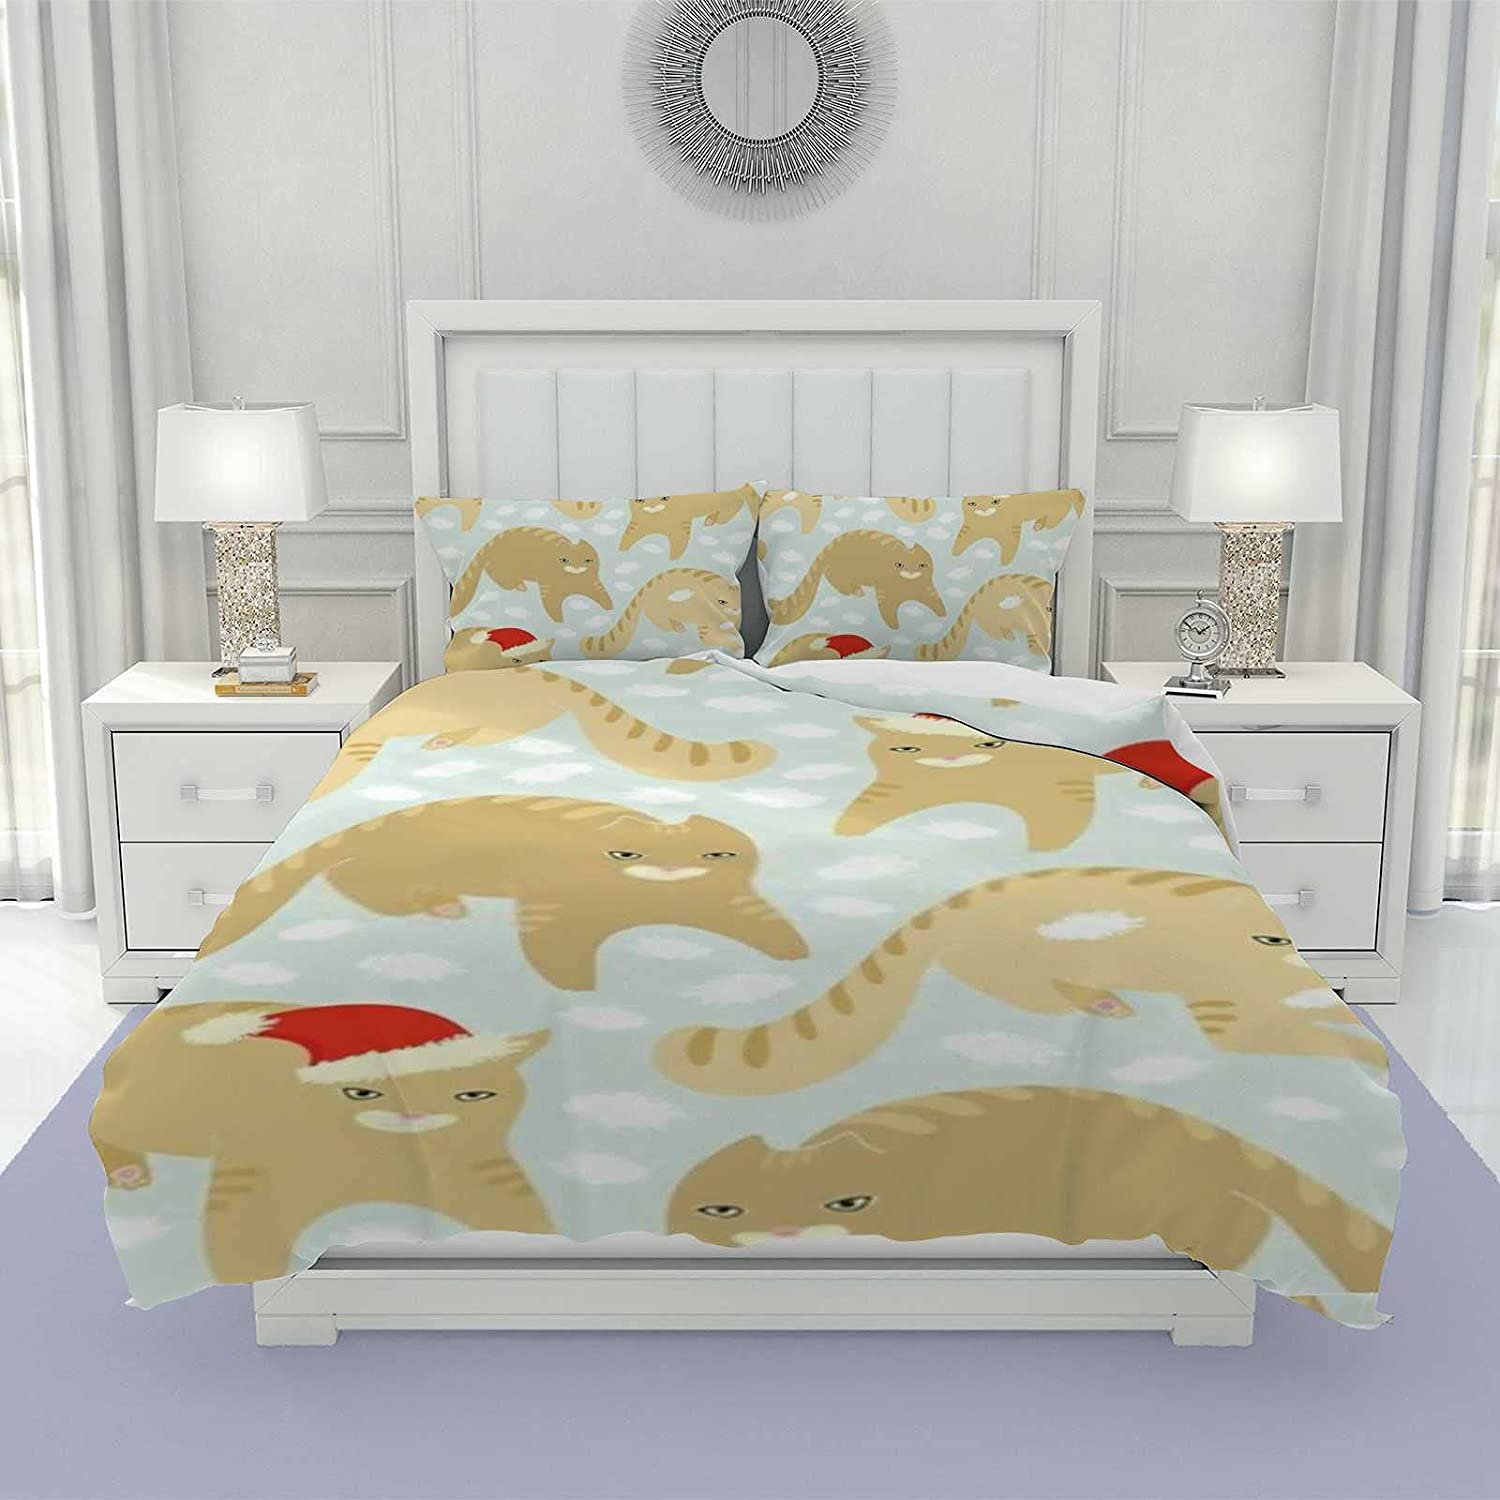 Georva Max 85% OFF 3 Pieces Duvet Cover Set Max 71% OFF for Soft Microfiber Polyest Kids